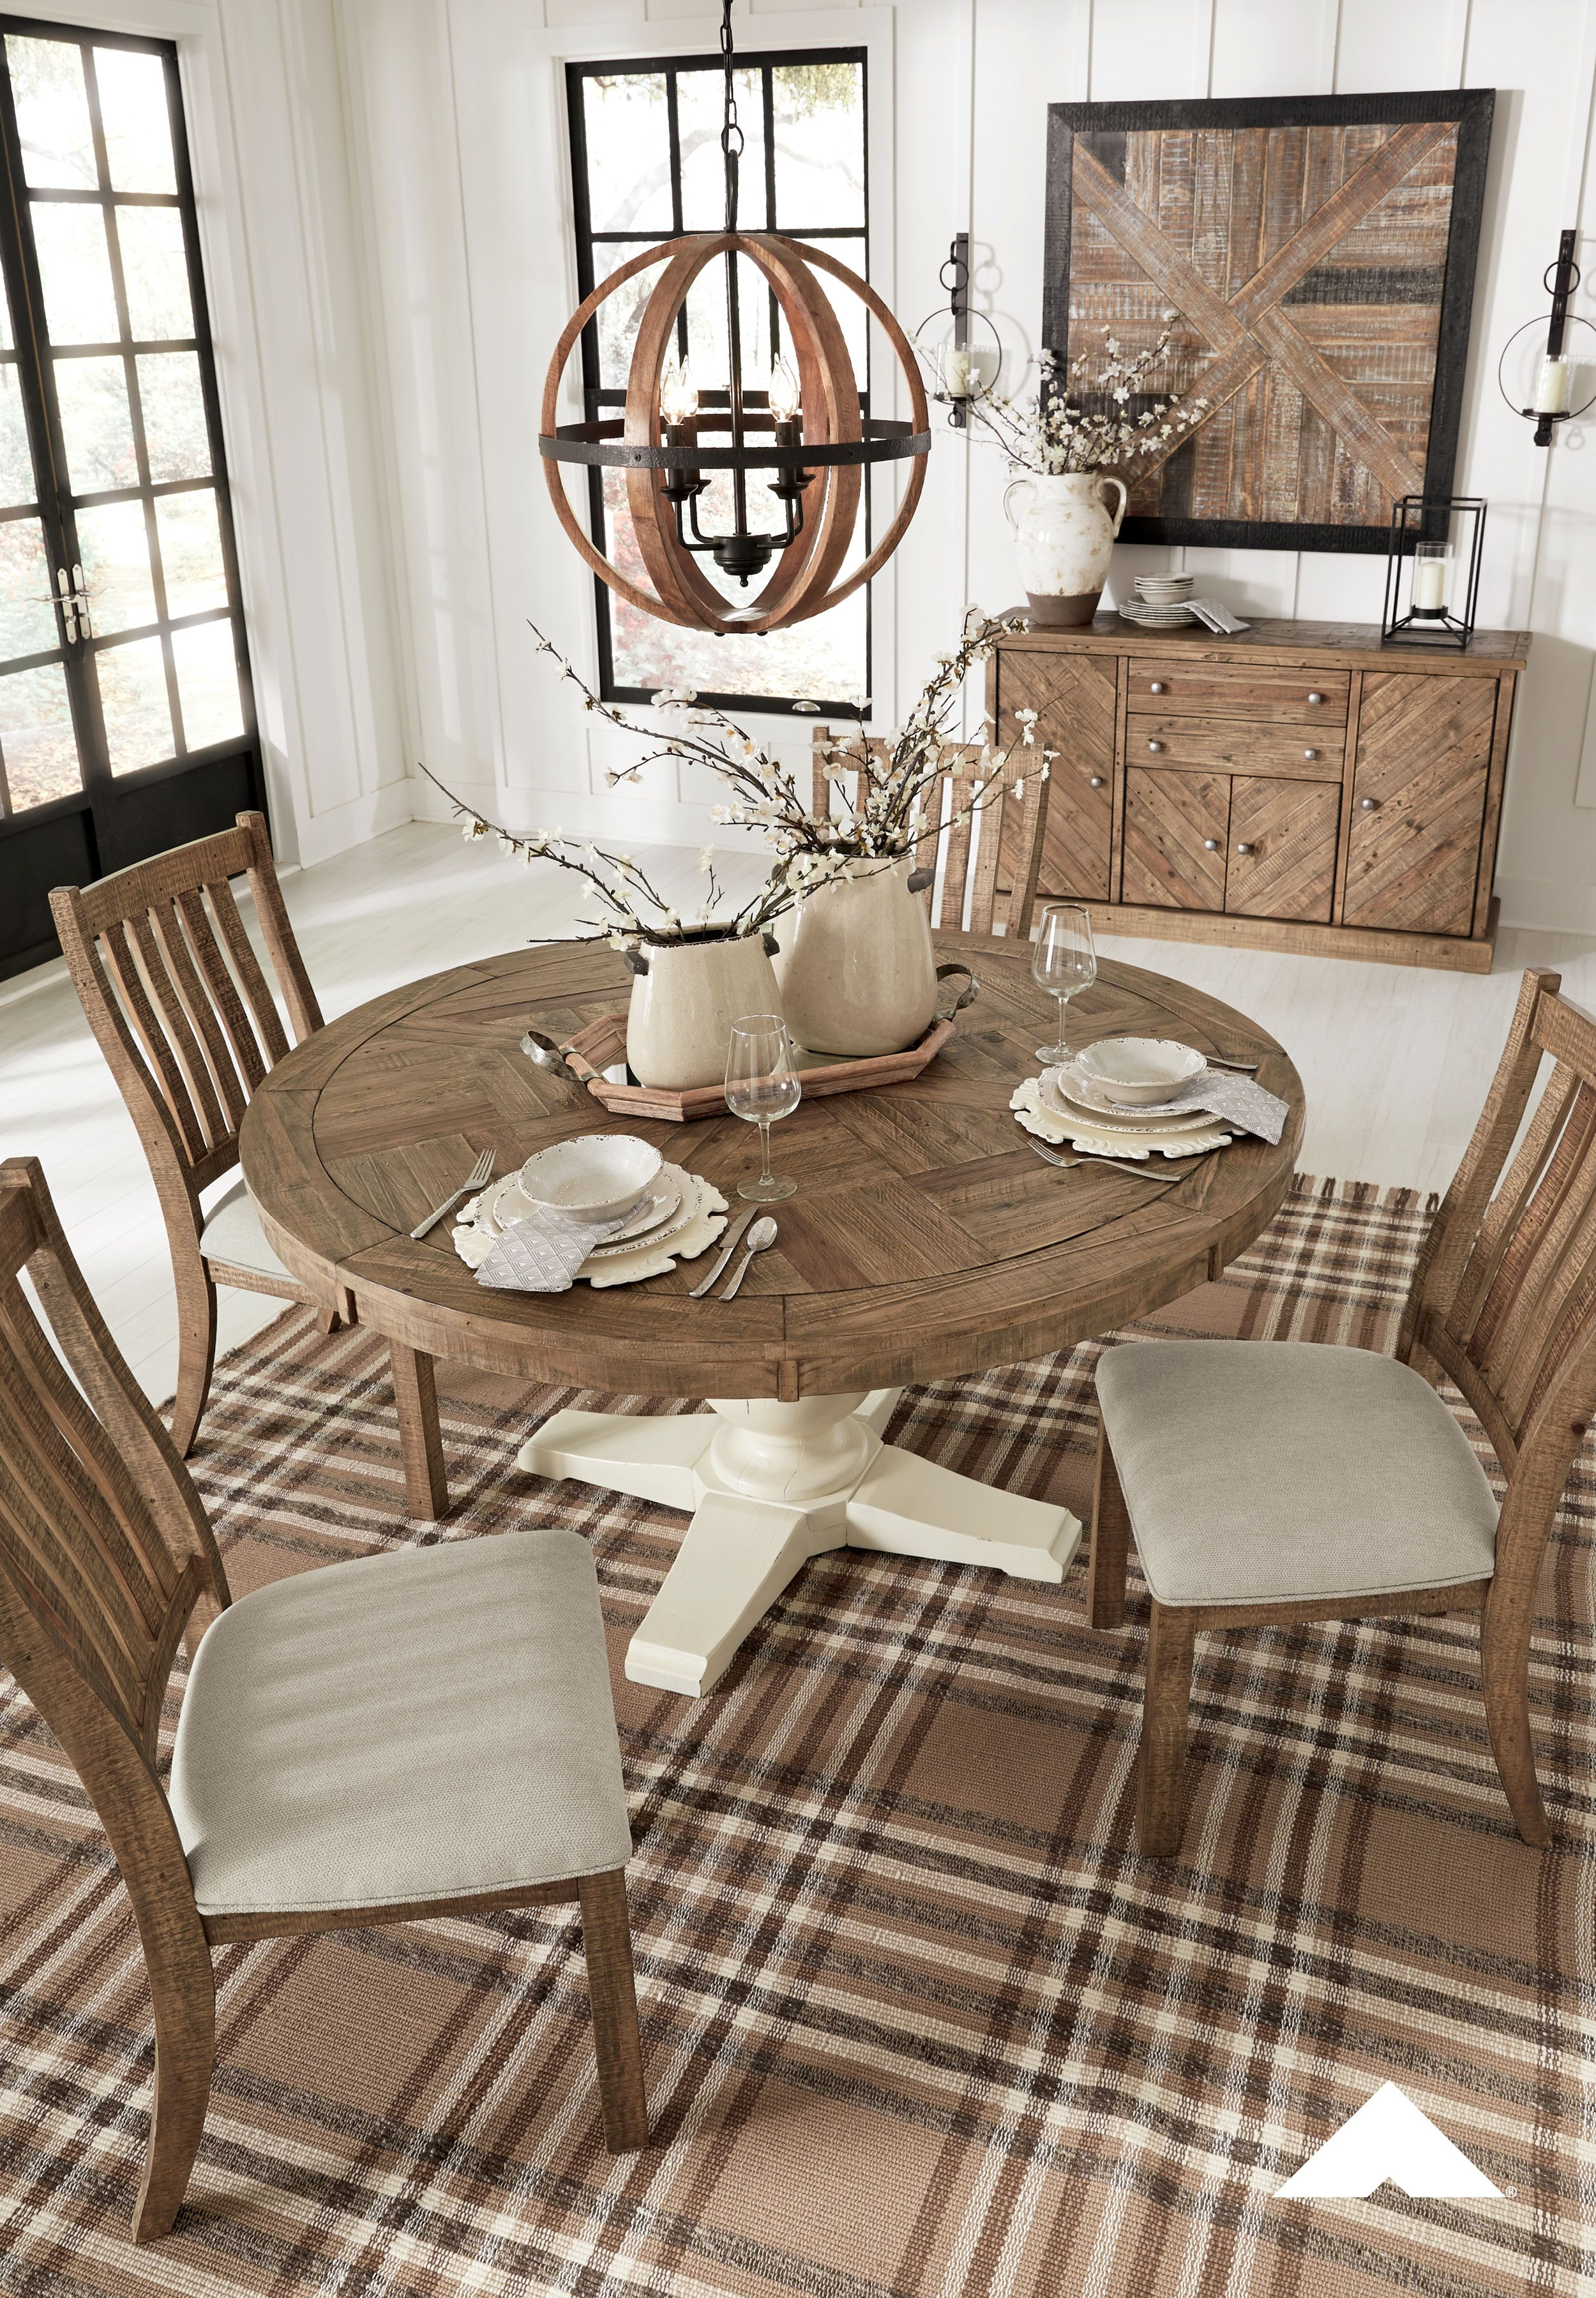 Grindleburg Dining Room Set By Ashley Furniture Pastoralcharm Farmhouse Farmho Round Dining Room Table Ashley Furniture Dining Furniture Dining Room Table